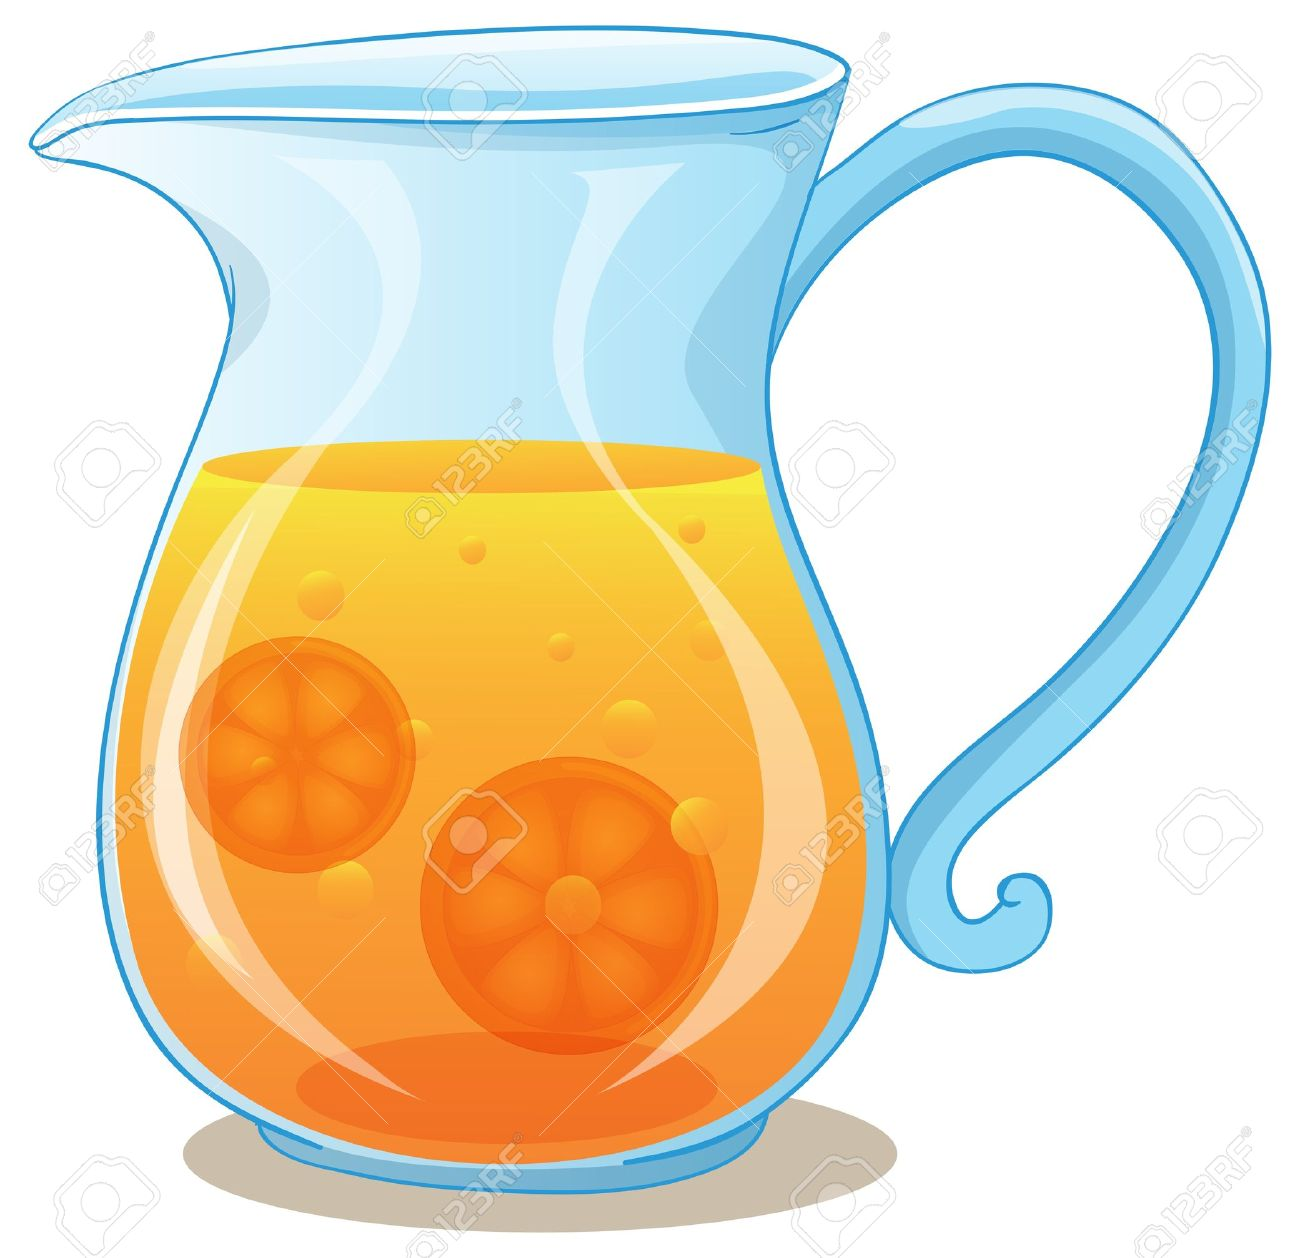 water jug: Illustration of a .-water jug: Illustration of a .-5